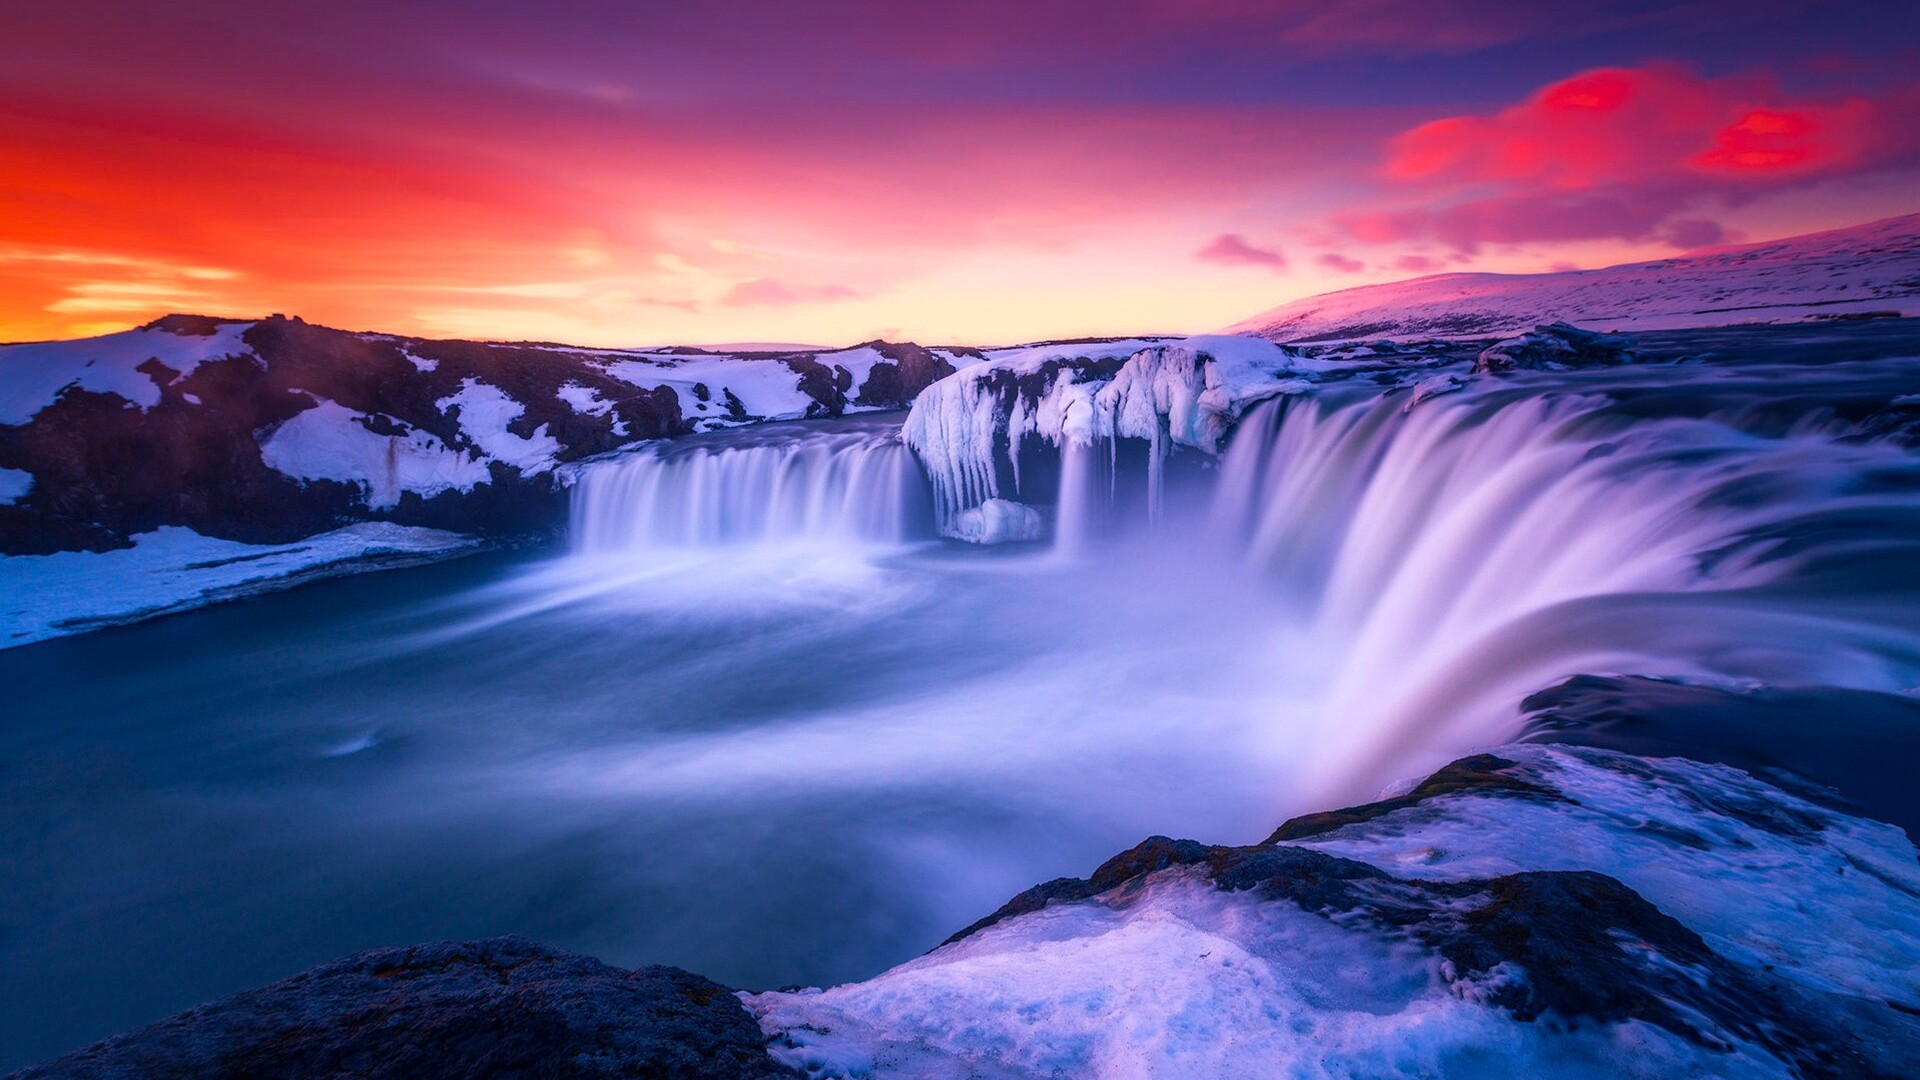 Waterfall Iceland Wide Jpg